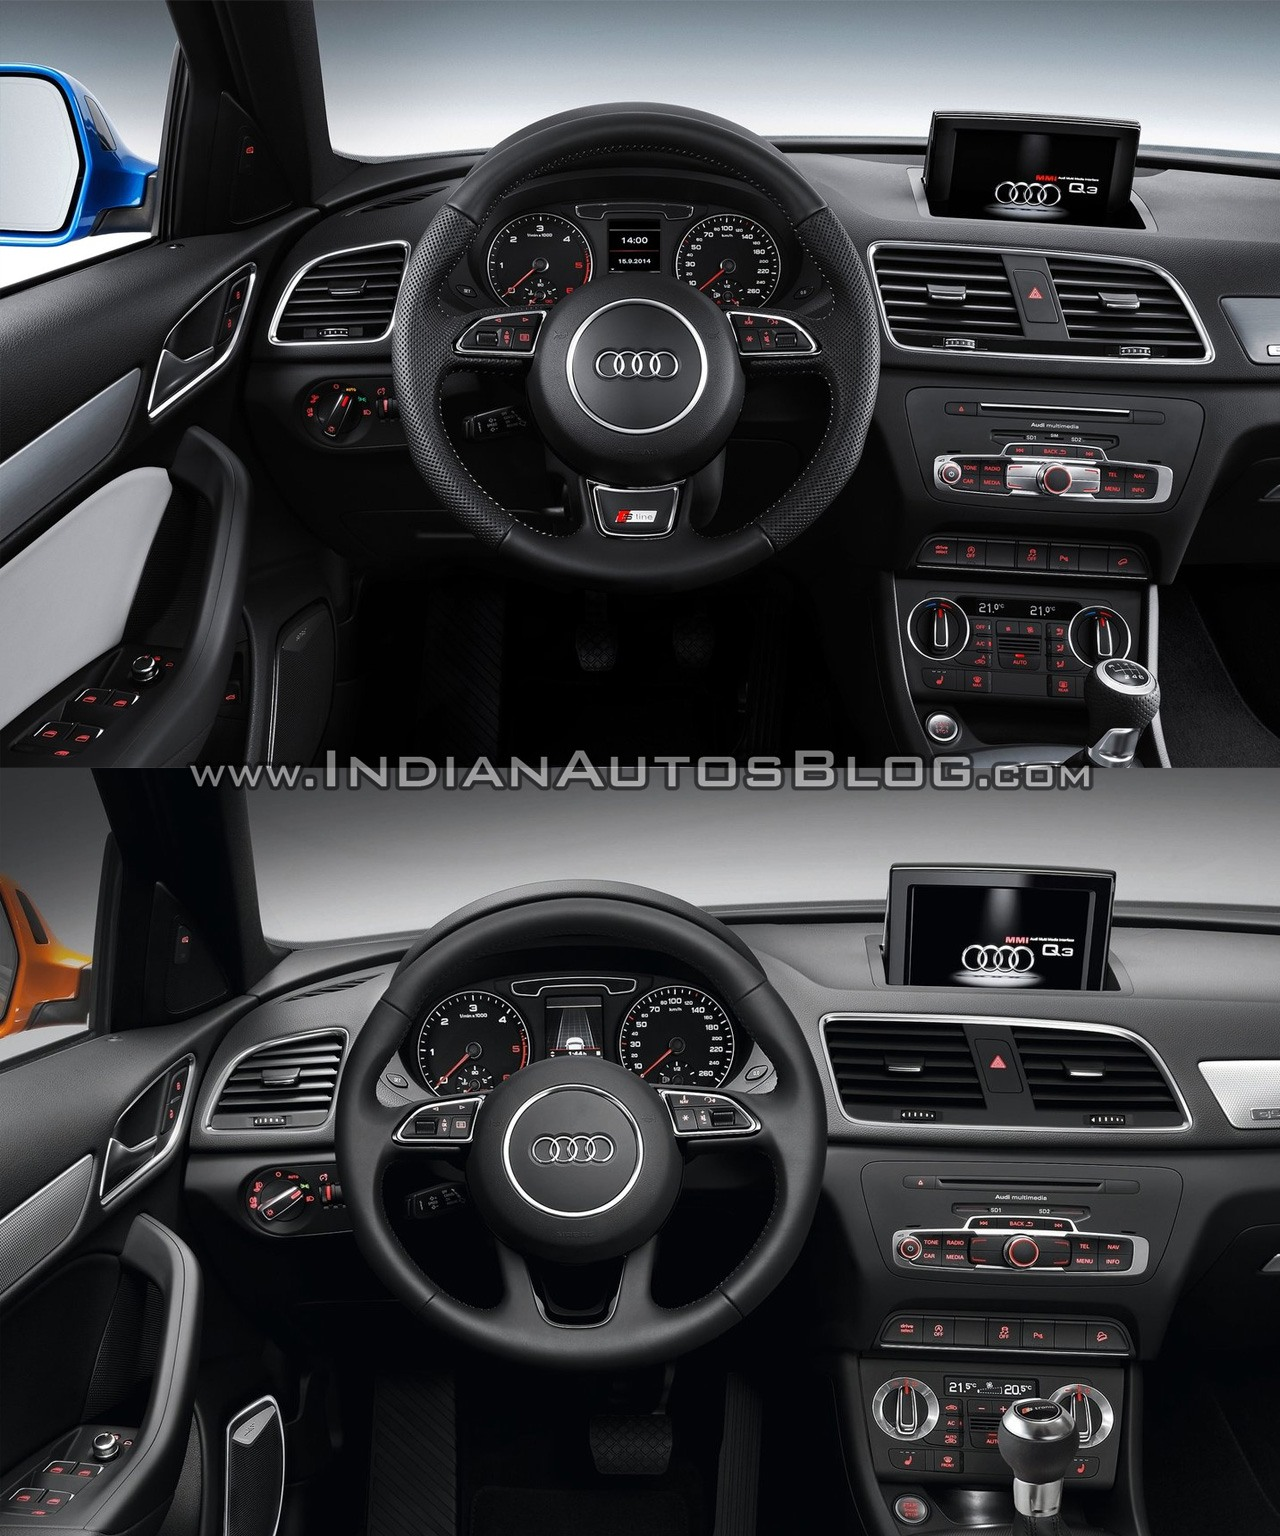 2018 Audi Q3 Interior: 2015 Audi Q3 Facelift Vs Older Model Interior